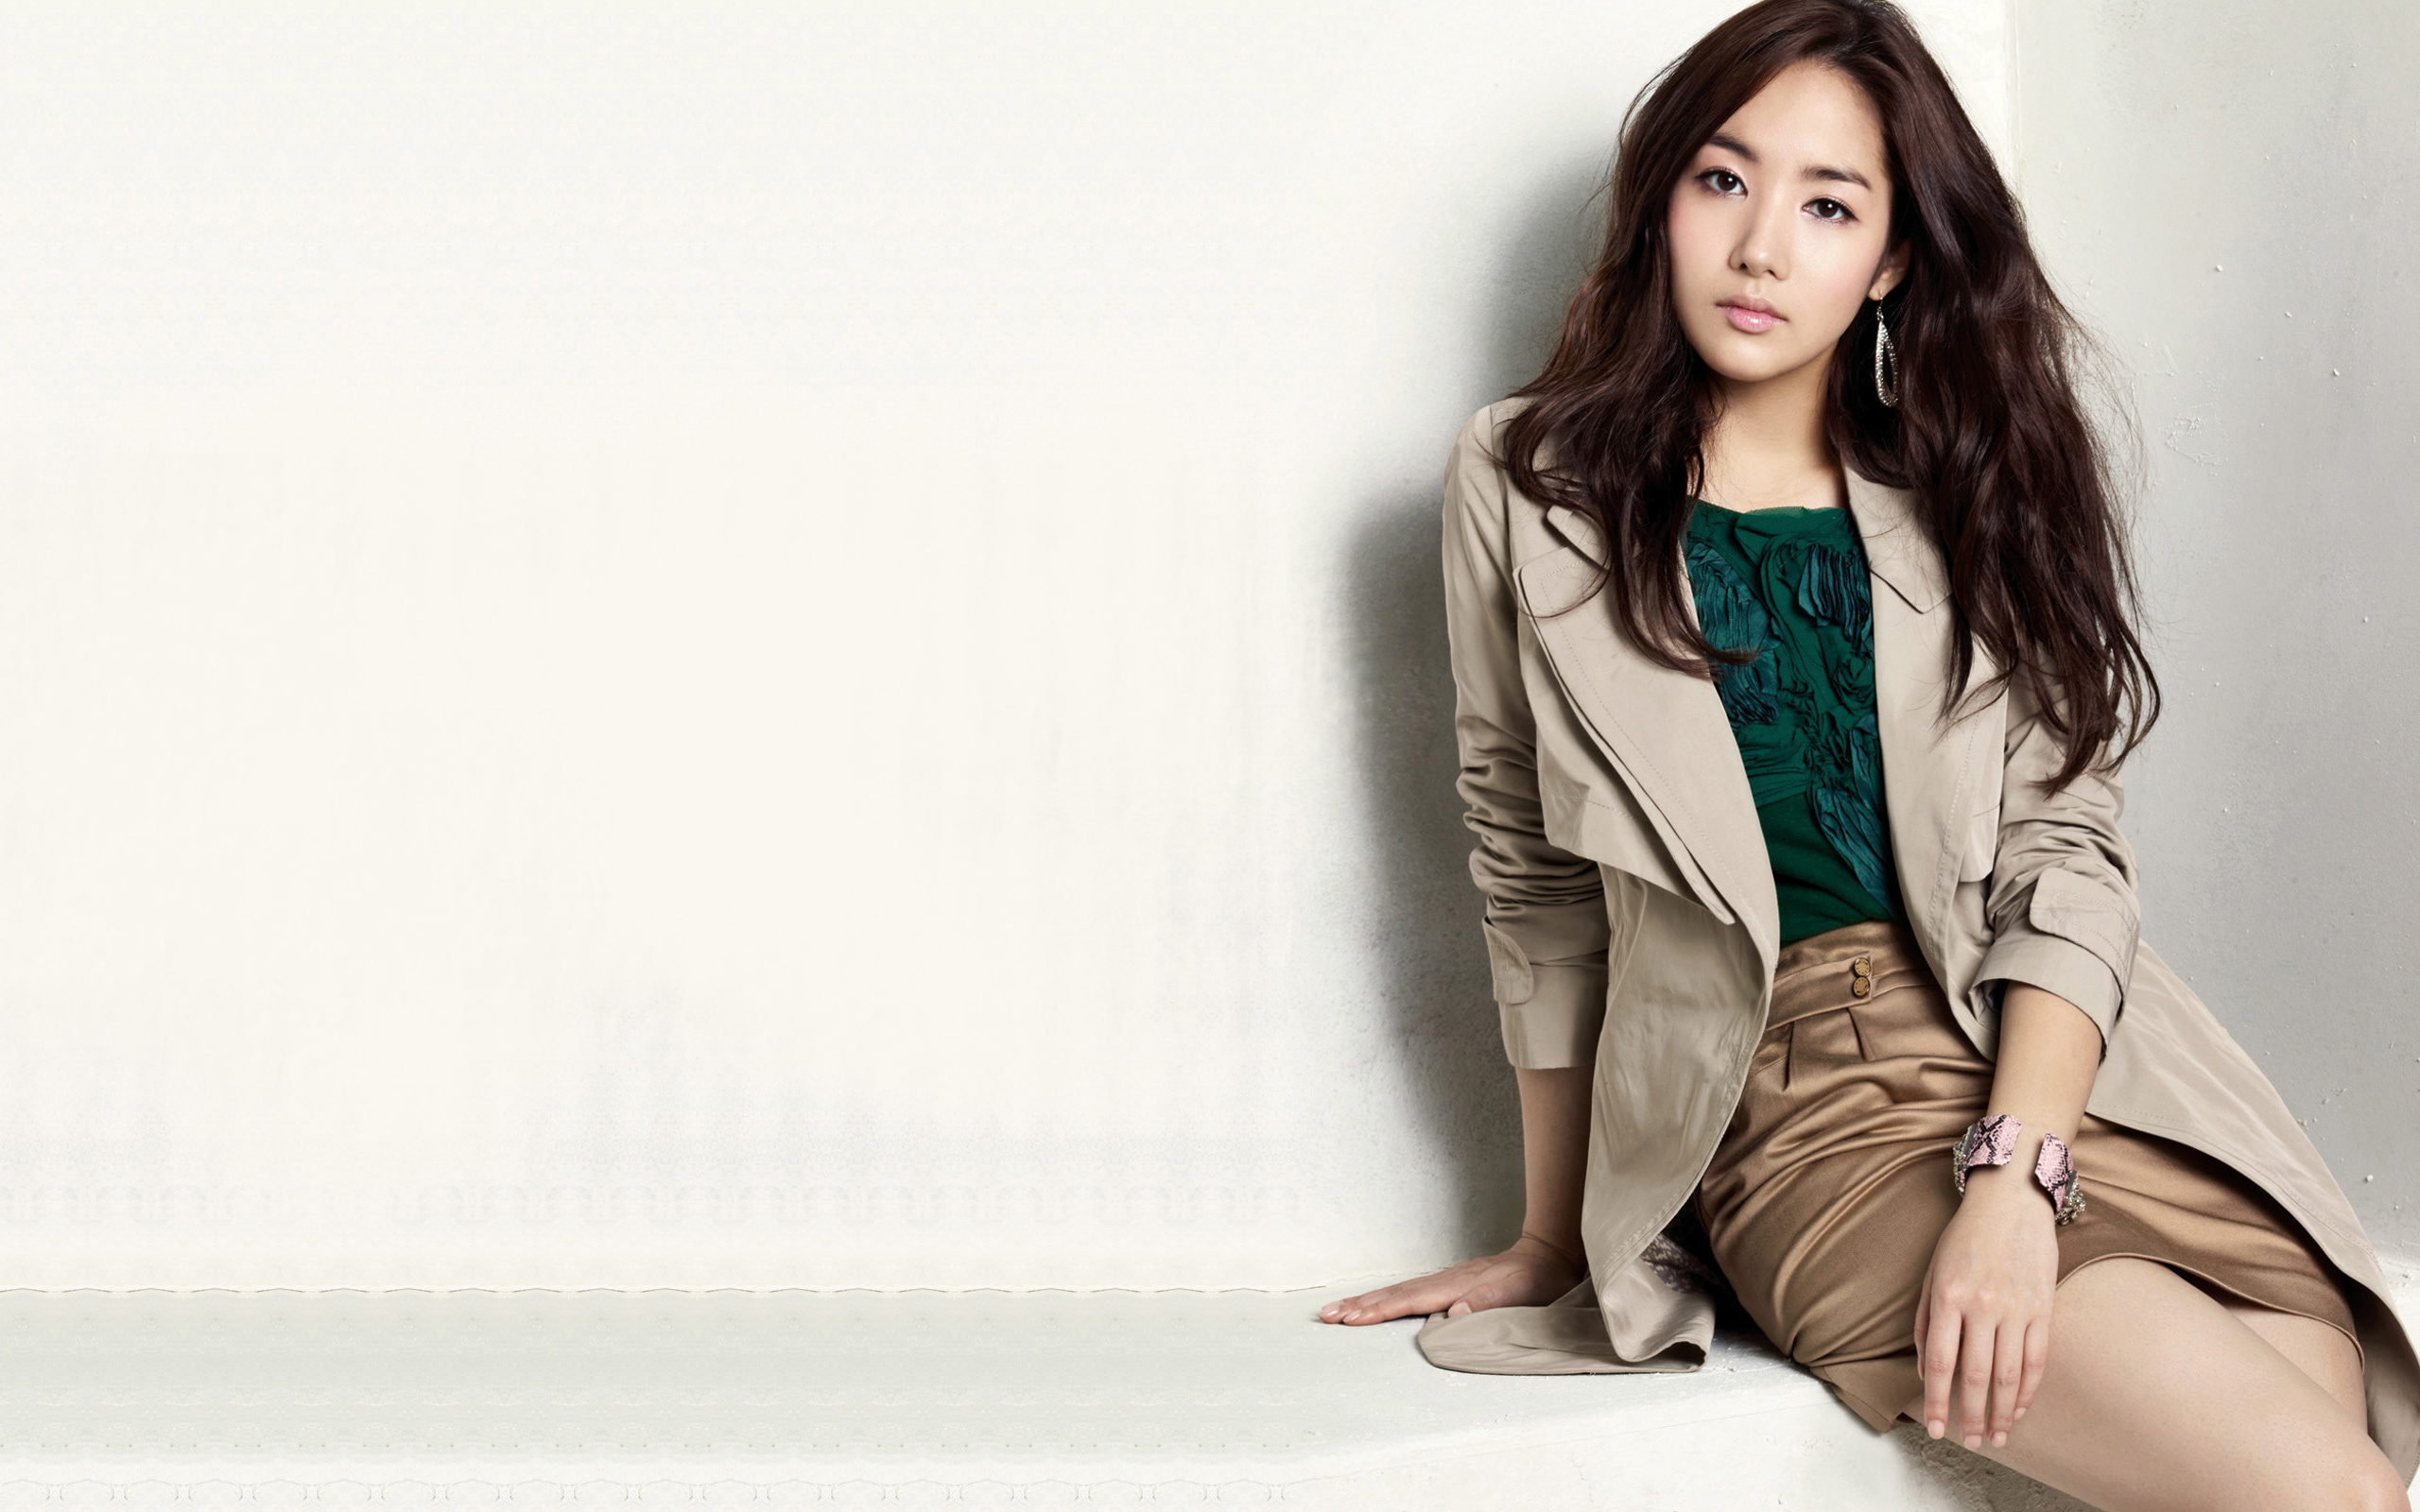 Park Min Young Wallpapers Images Photos Pictures Backgrounds 2560x1600